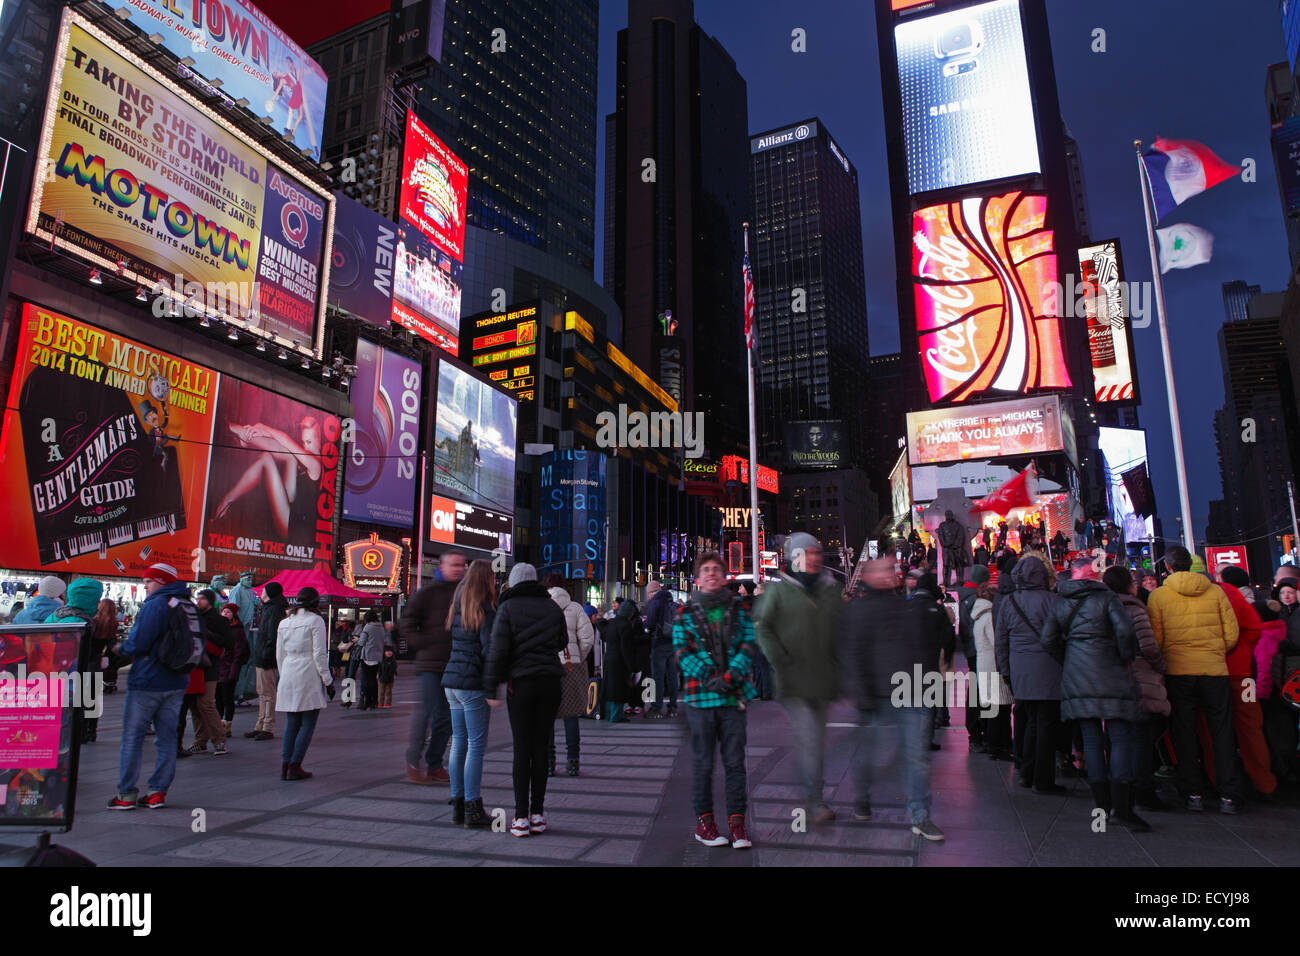 Crowds and billboards in Times Square New York evening long exposure motion blur - Stock Image